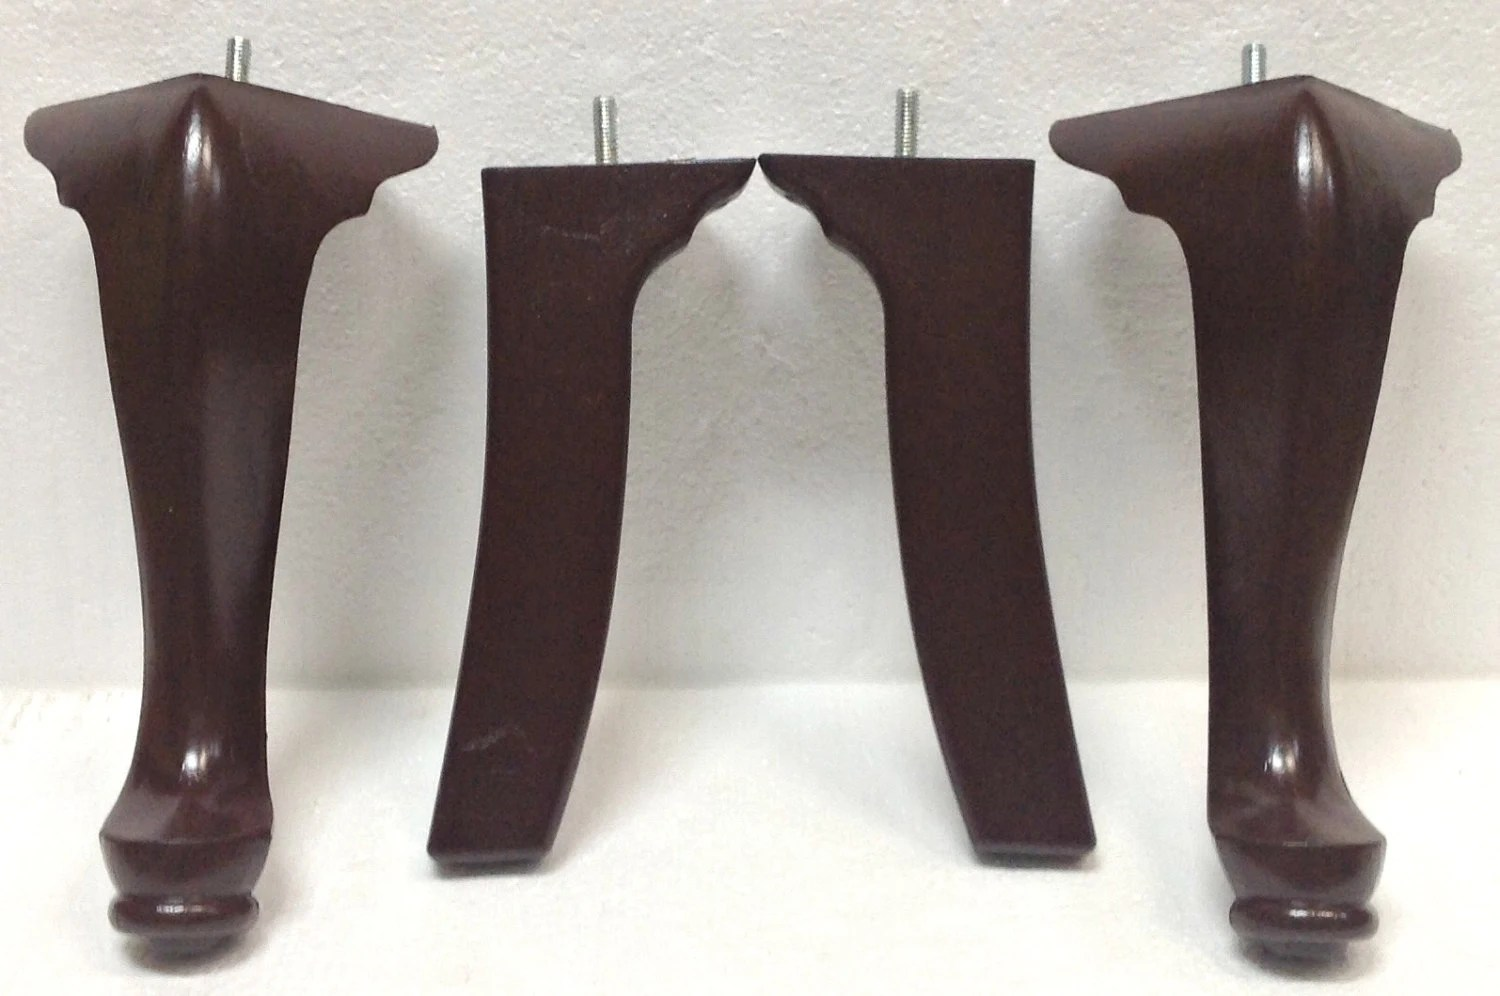 plastic feet for chair legs wrought iron rocking outdoor queen anne furniture wood sofa couch